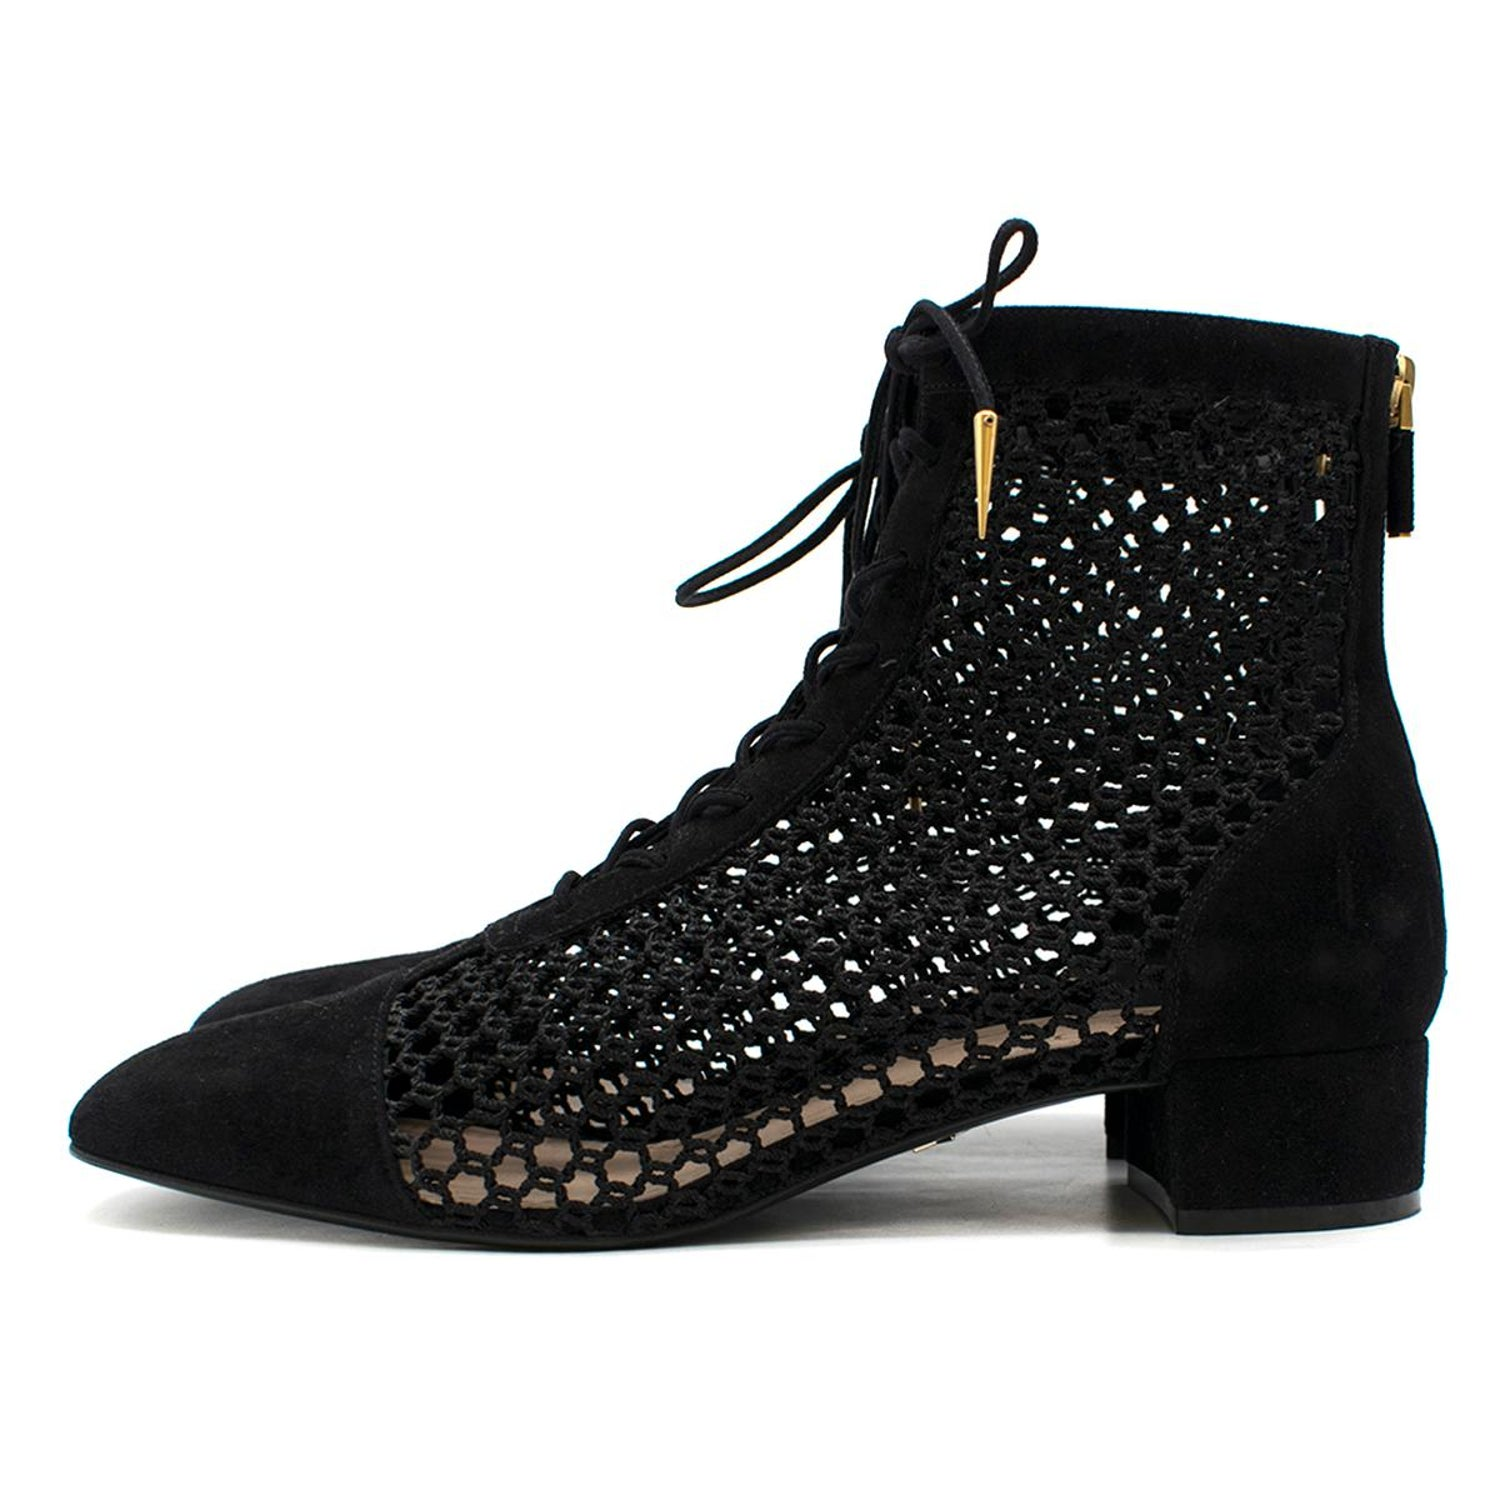 655d26bd78 Dior Naughtily-D 3cm Mesh Ankle Boot 41